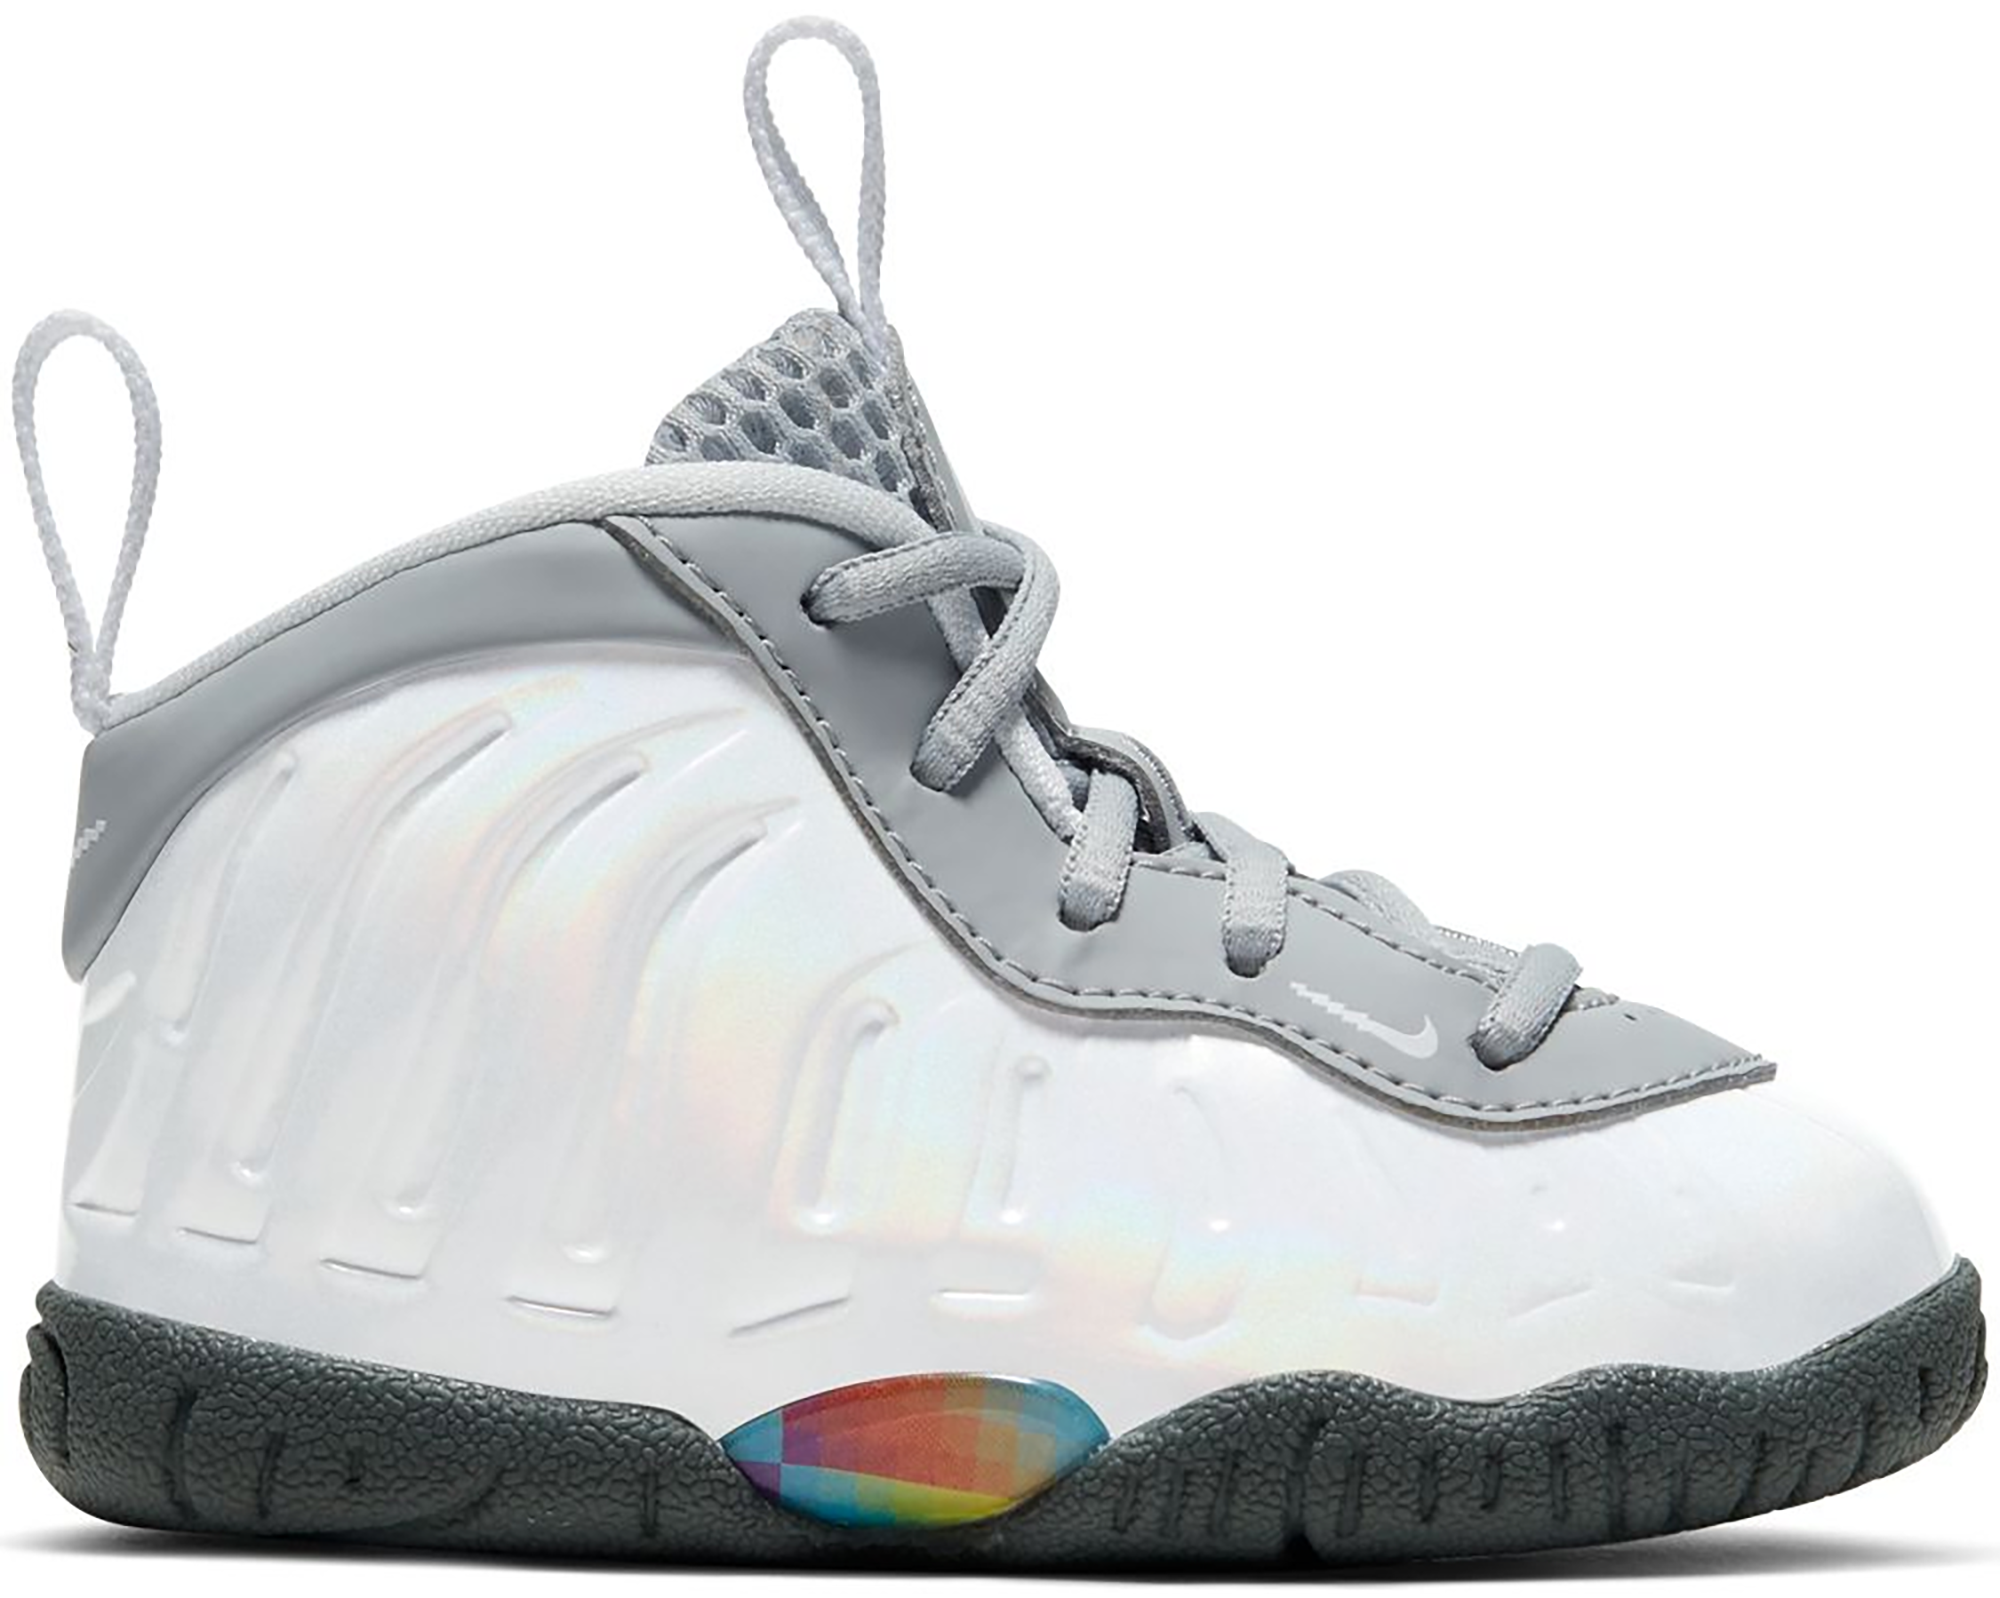 Another Look at the Nike Air Foamposite One Grey Suede ...